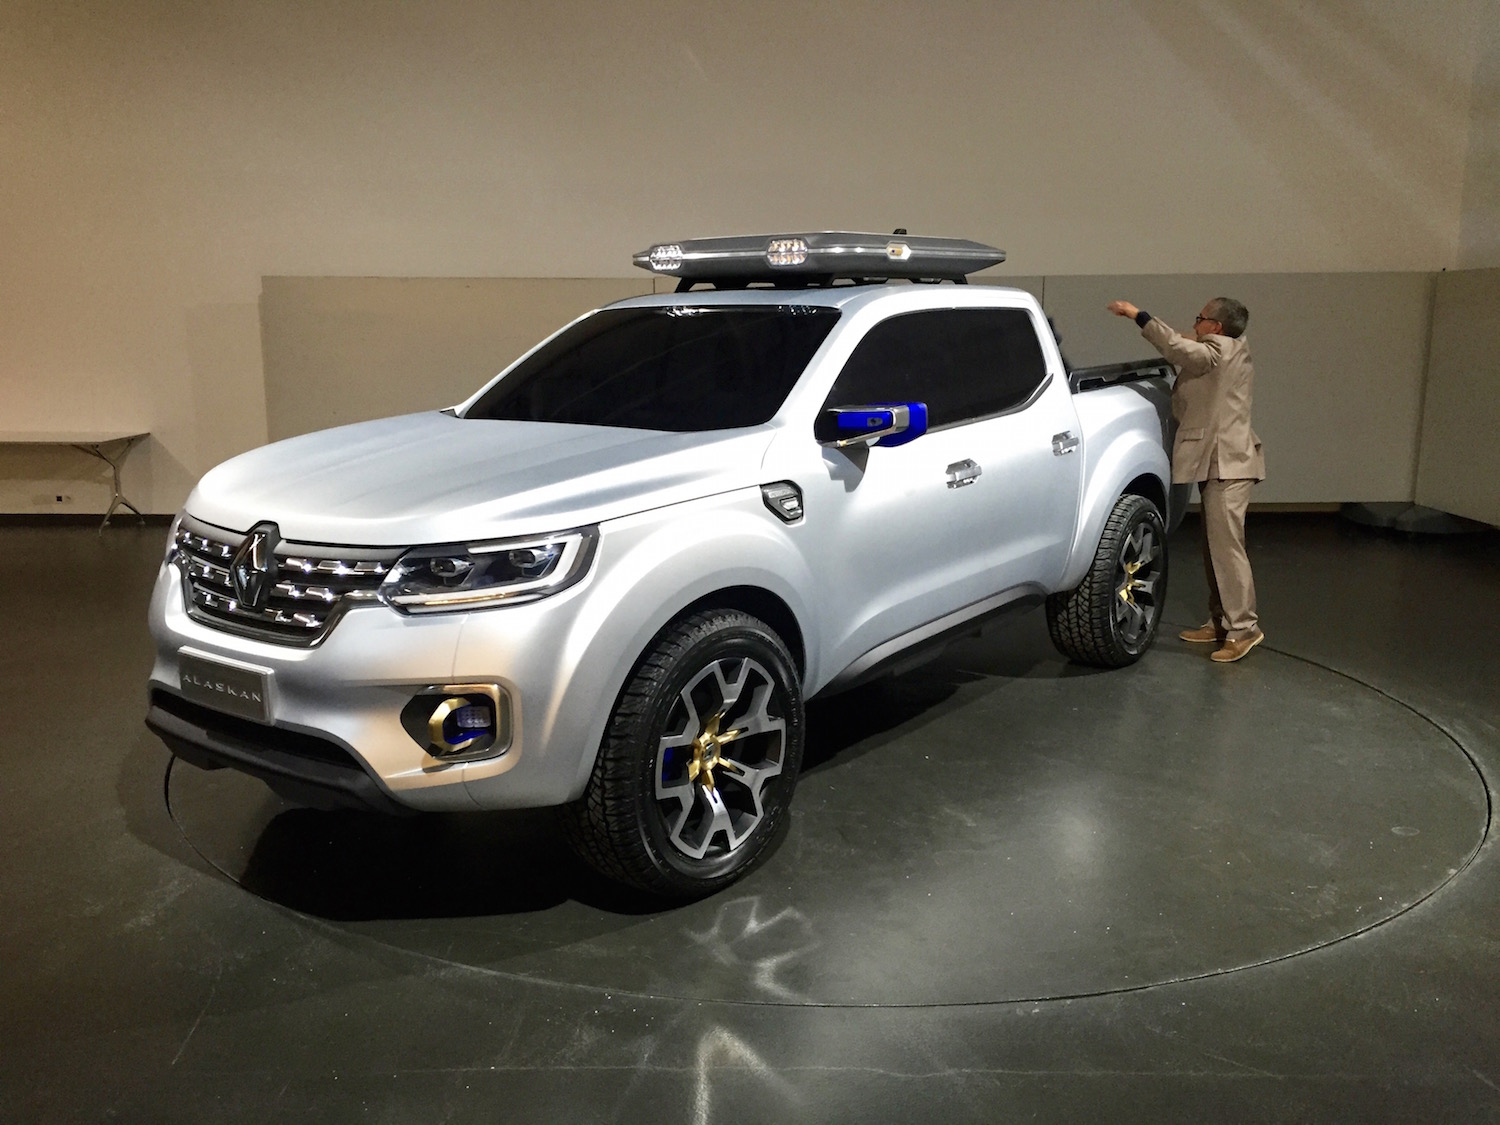 Renault Alaskan ute: Up close and personal with the French pick-up ...